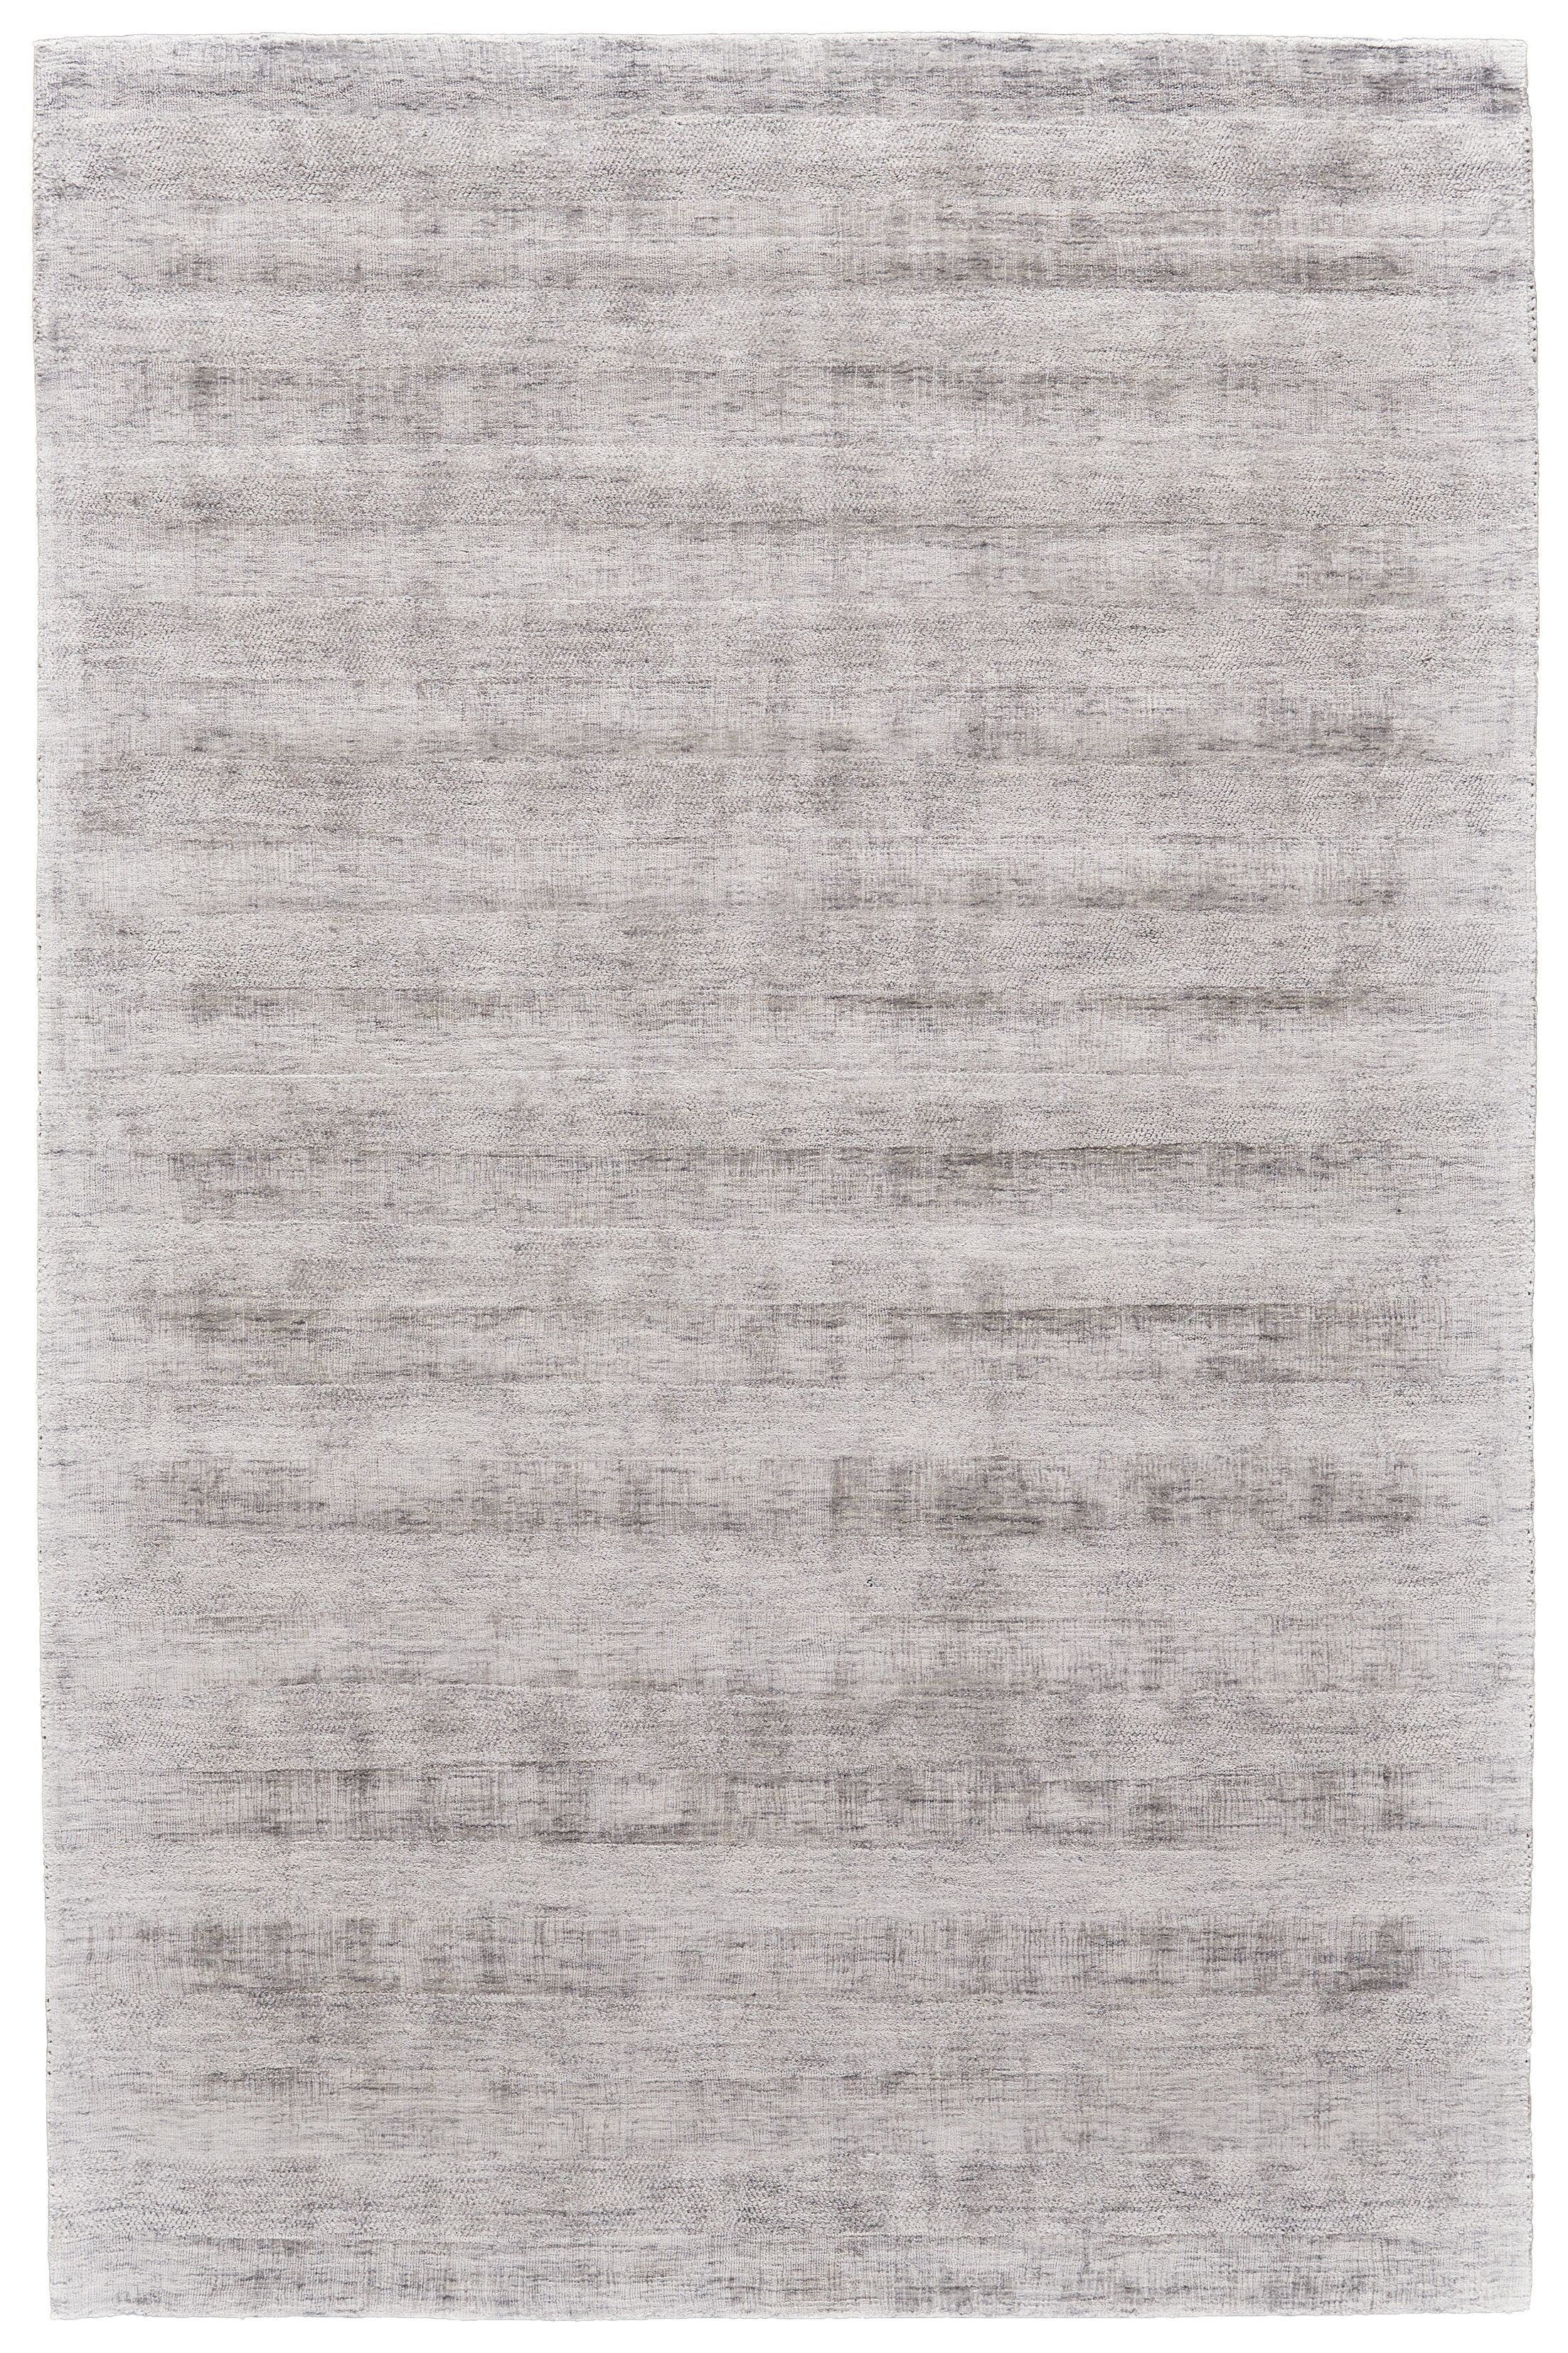 Pilning Hand-Woven Silver Area Rug Rug Size: Rectangle 5' x 8'